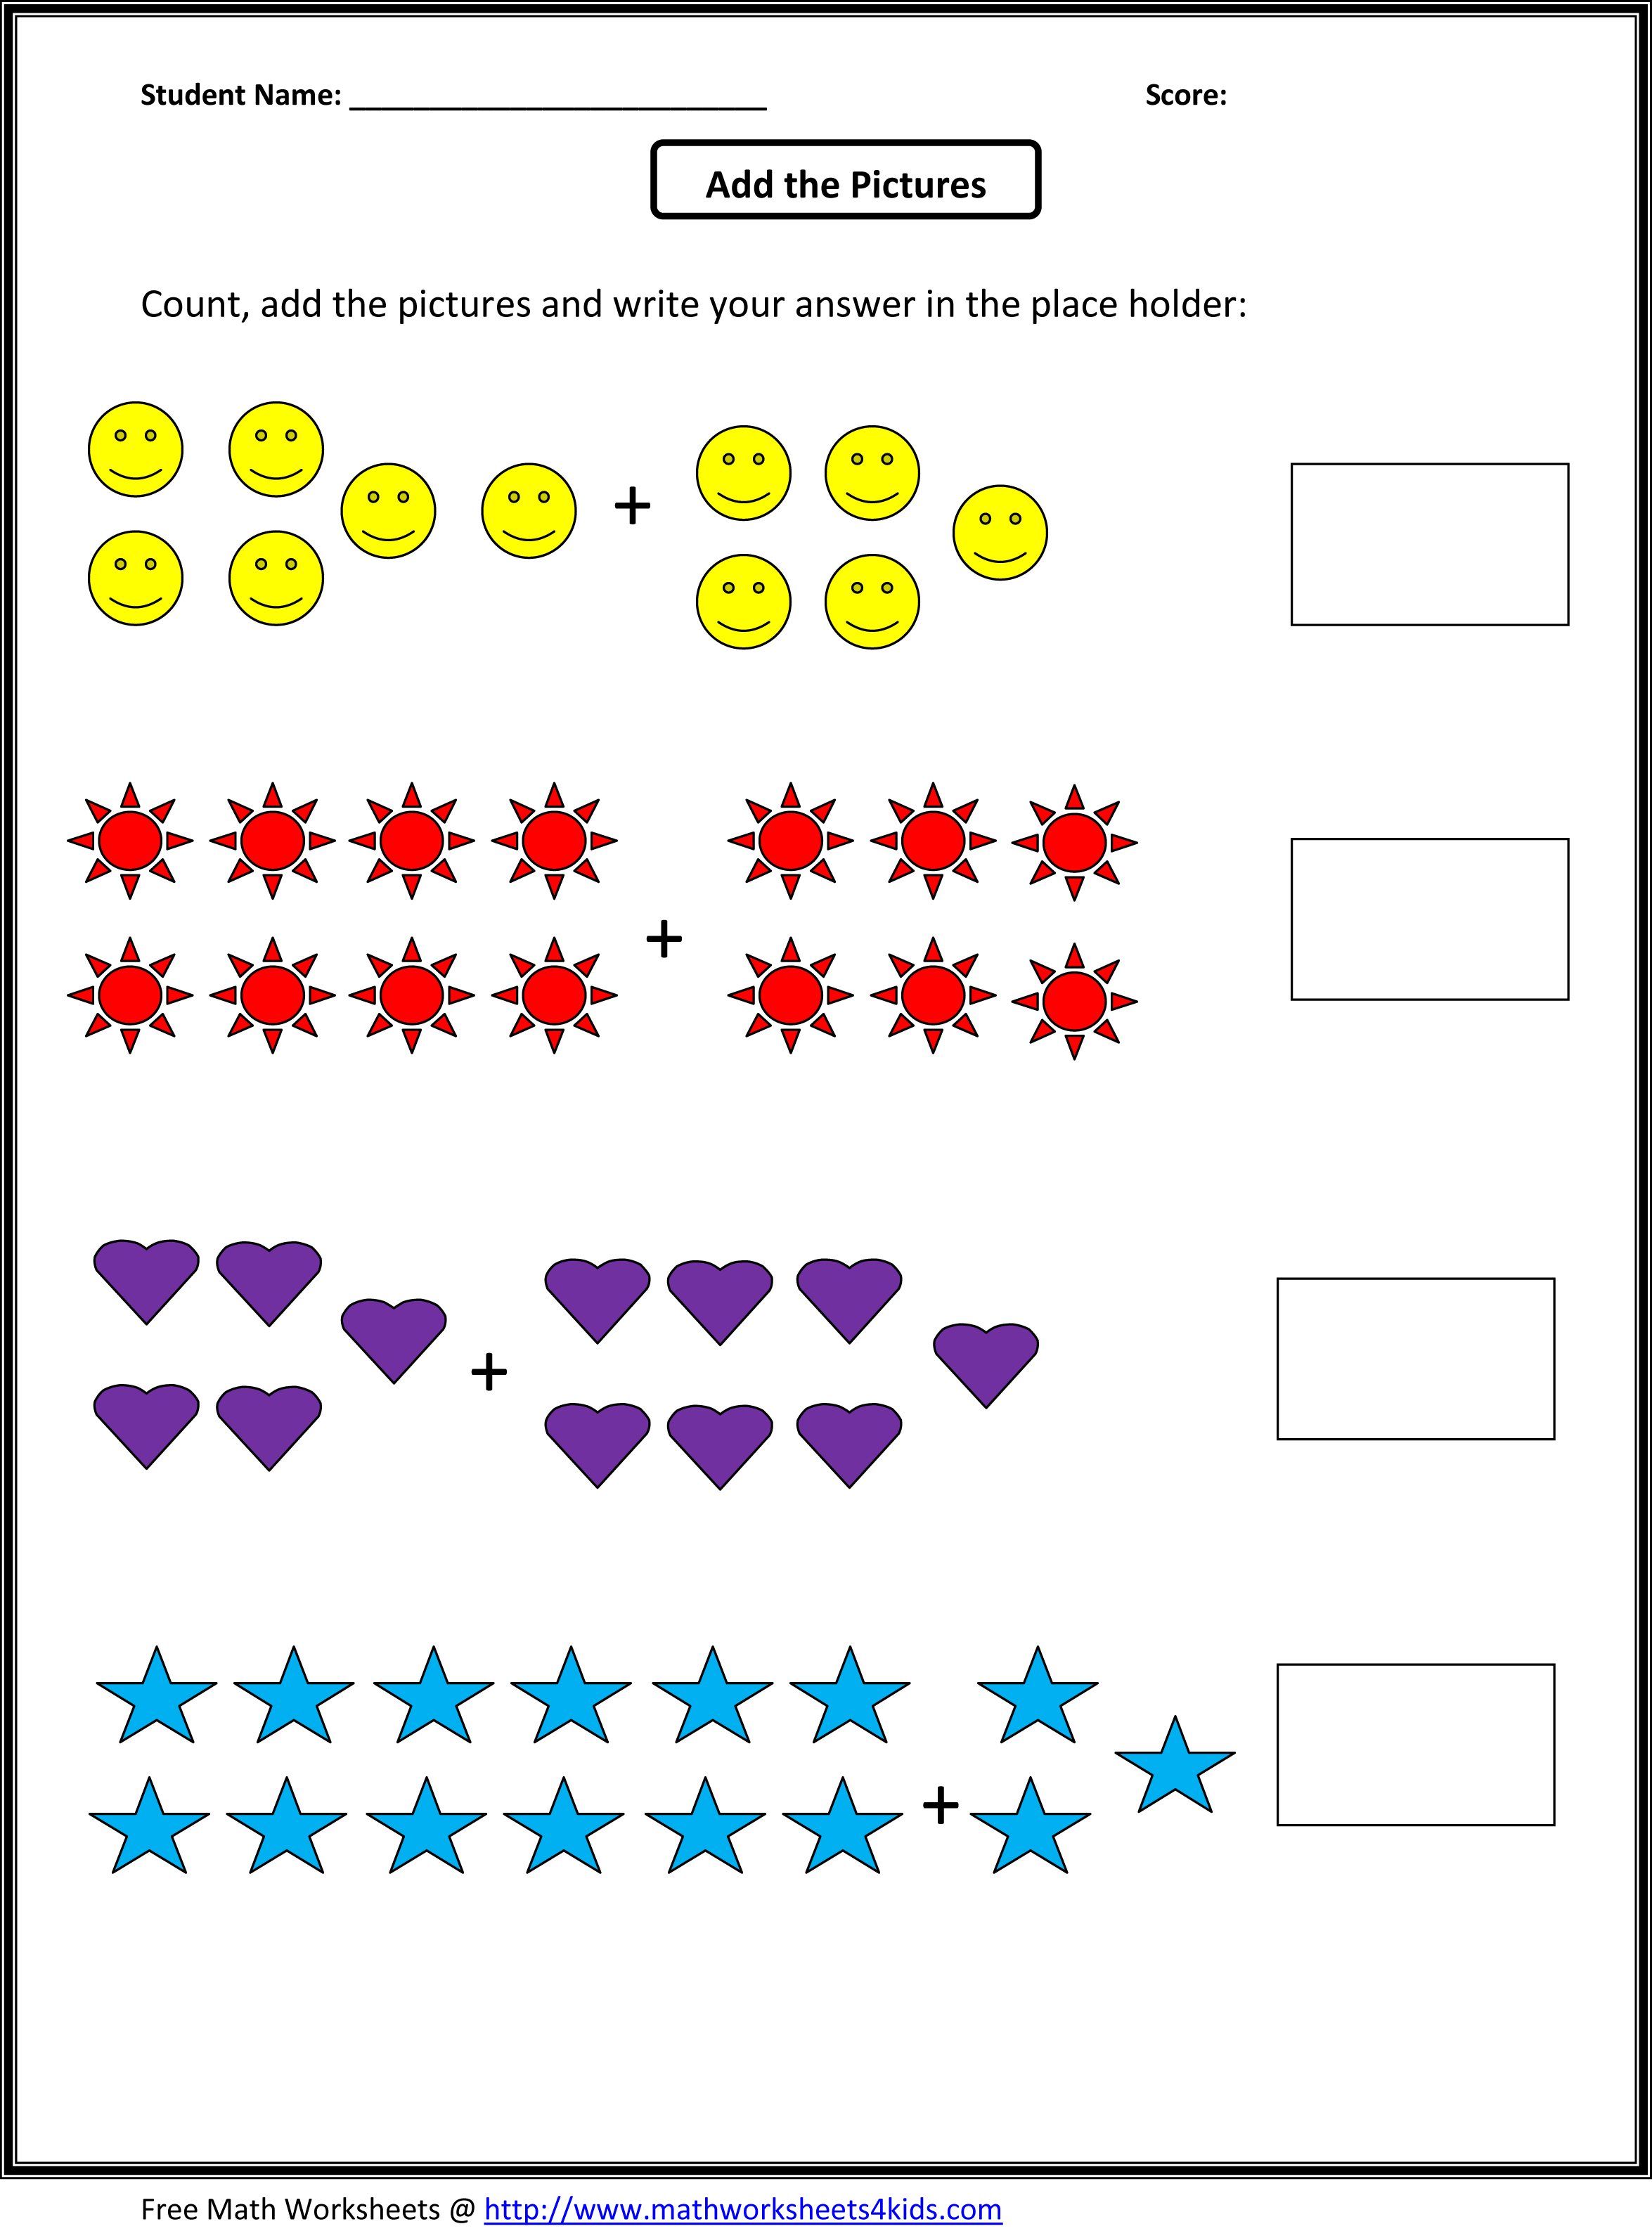 Weirdmailus  Gorgeous Grade  Maths Worksheet  Reocurent With Outstanding Math Worksheets For St Grade Free  Reocurent With Delightful Donald Duck Mathmagic Land Worksheet Also Renaming Fractions Worksheets In Addition Star Math Worksheets And Free Reading Worksheets For Th Grade As Well As Radical Expression Worksheet Additionally Free Kinder Worksheets From Reocurentcom With Weirdmailus  Outstanding Grade  Maths Worksheet  Reocurent With Delightful Math Worksheets For St Grade Free  Reocurent And Gorgeous Donald Duck Mathmagic Land Worksheet Also Renaming Fractions Worksheets In Addition Star Math Worksheets From Reocurentcom